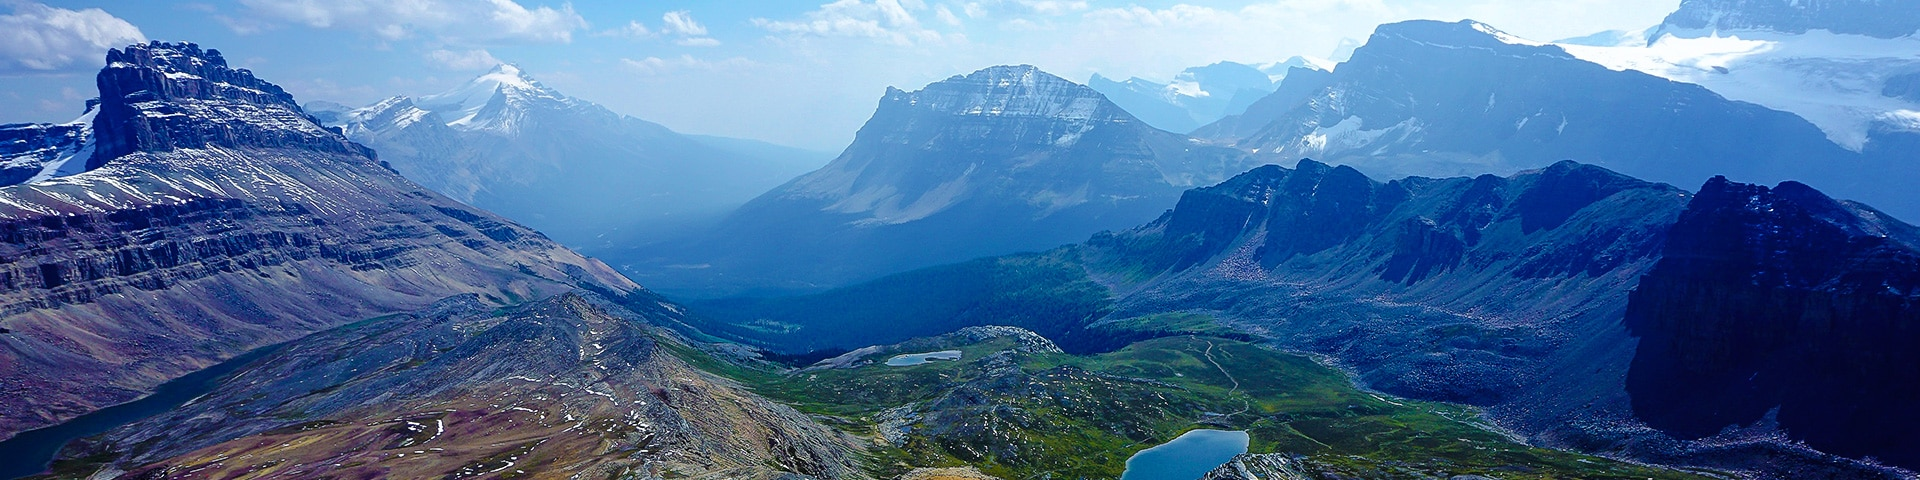 Panorama of the Helen Lake hike along Icefields Parkway, the Canadian Rockies